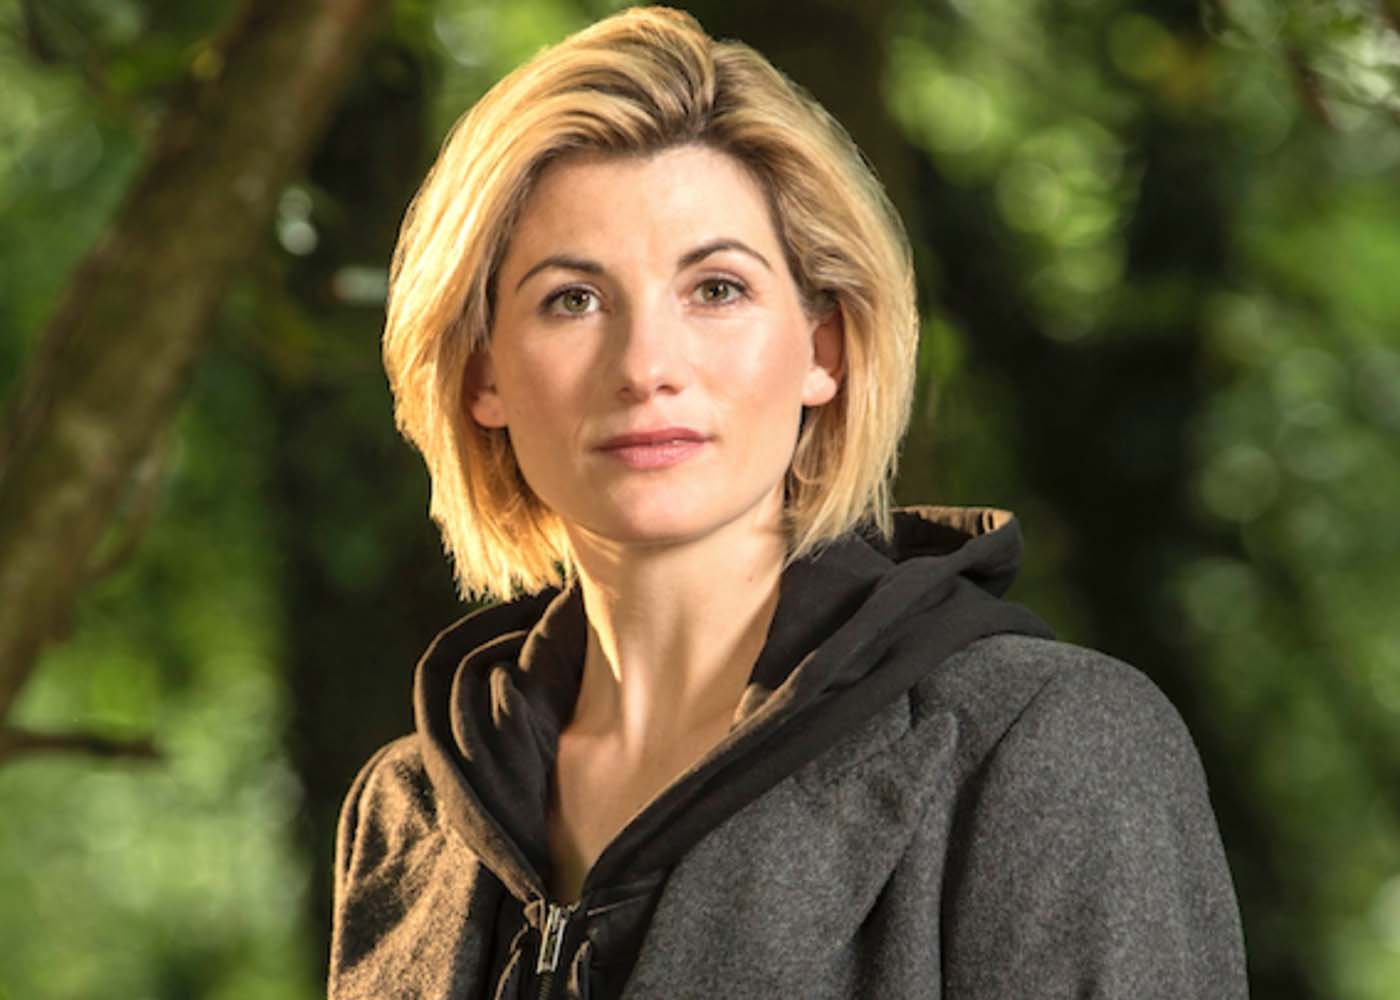 Jodie Whittaker Taking Over the Tardis on Doctor Who